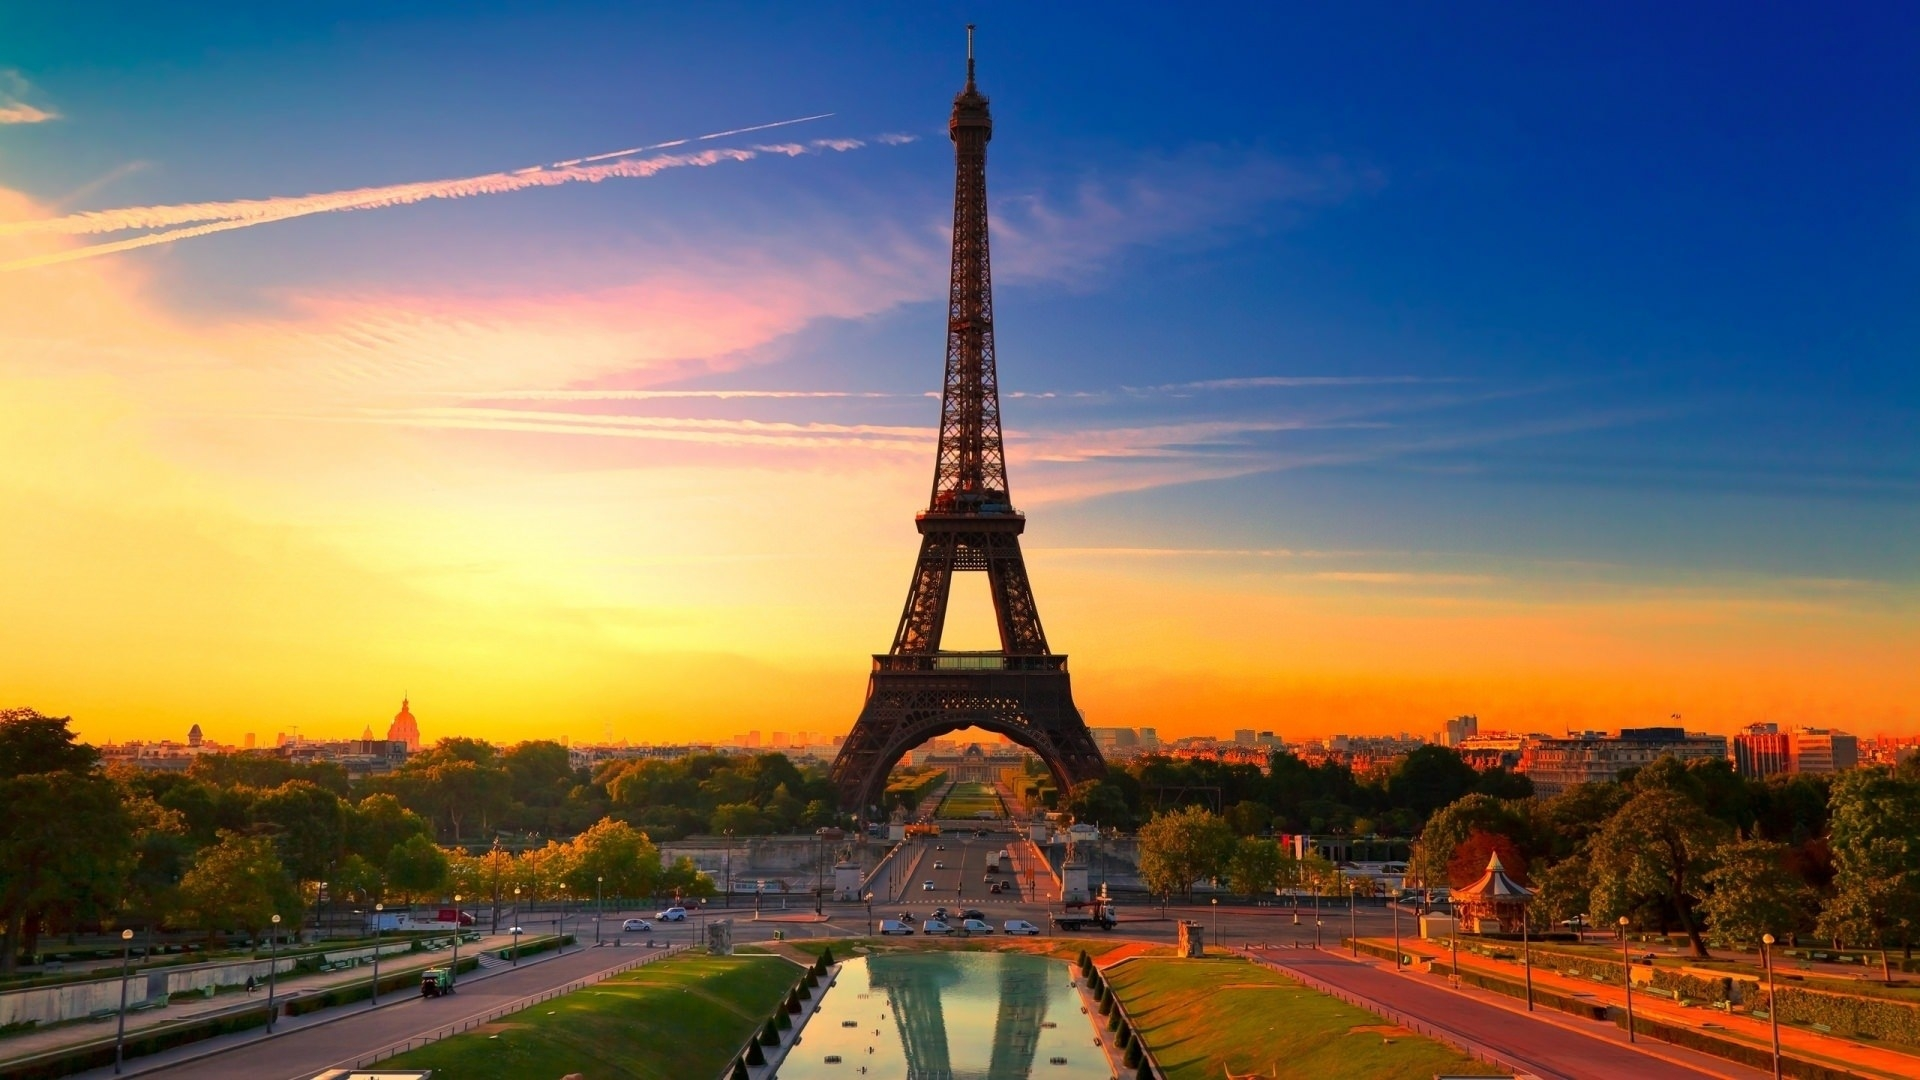 Eiffel Tower at Dawn Paris Background